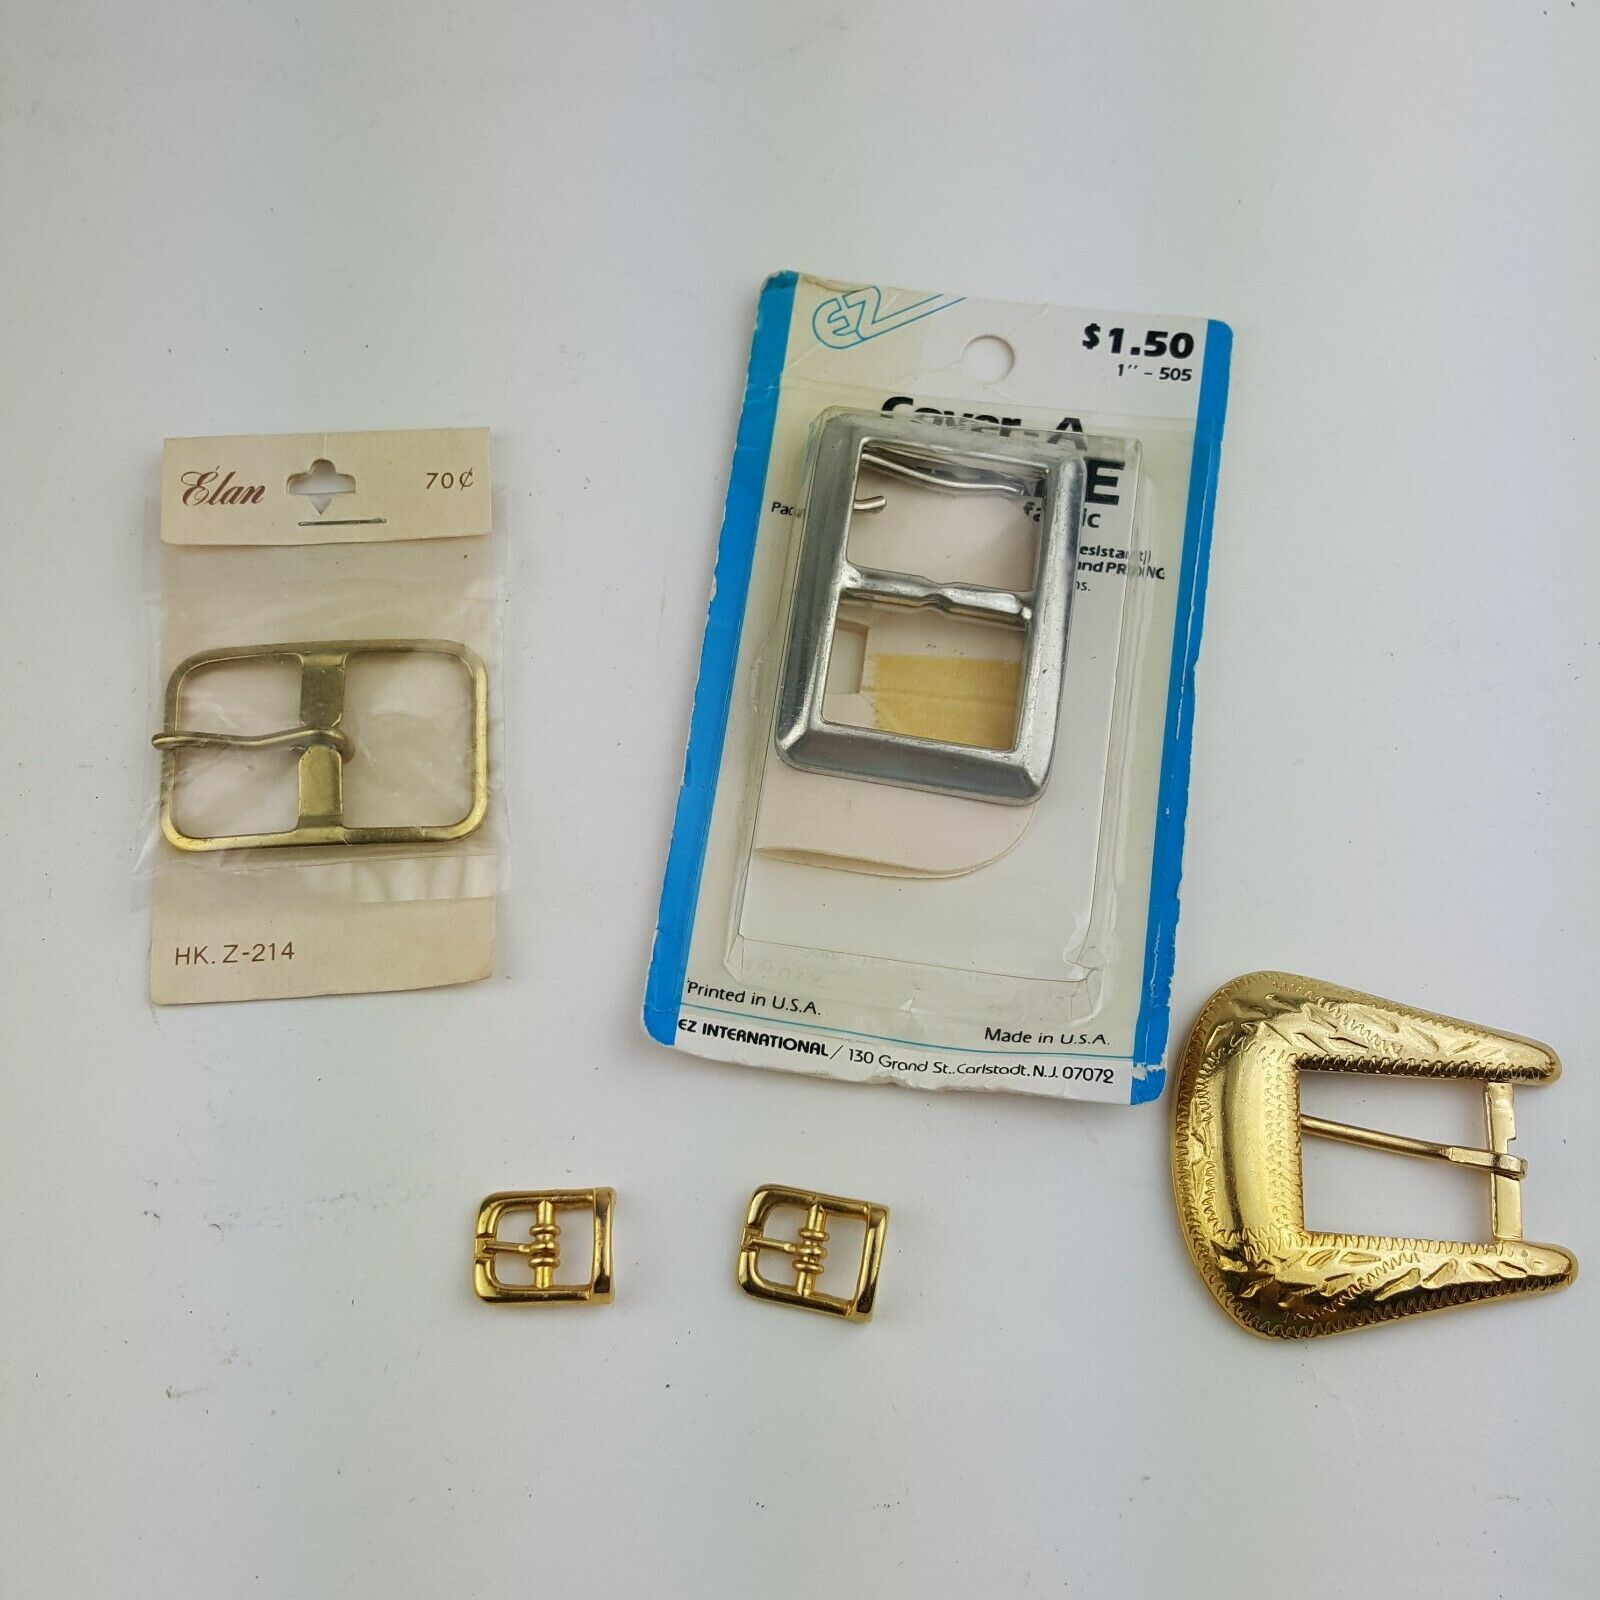 Buckle Lot Solid Nickel Silver EZ Cover A Buckle WIth Your Fabric Elan HK Z214